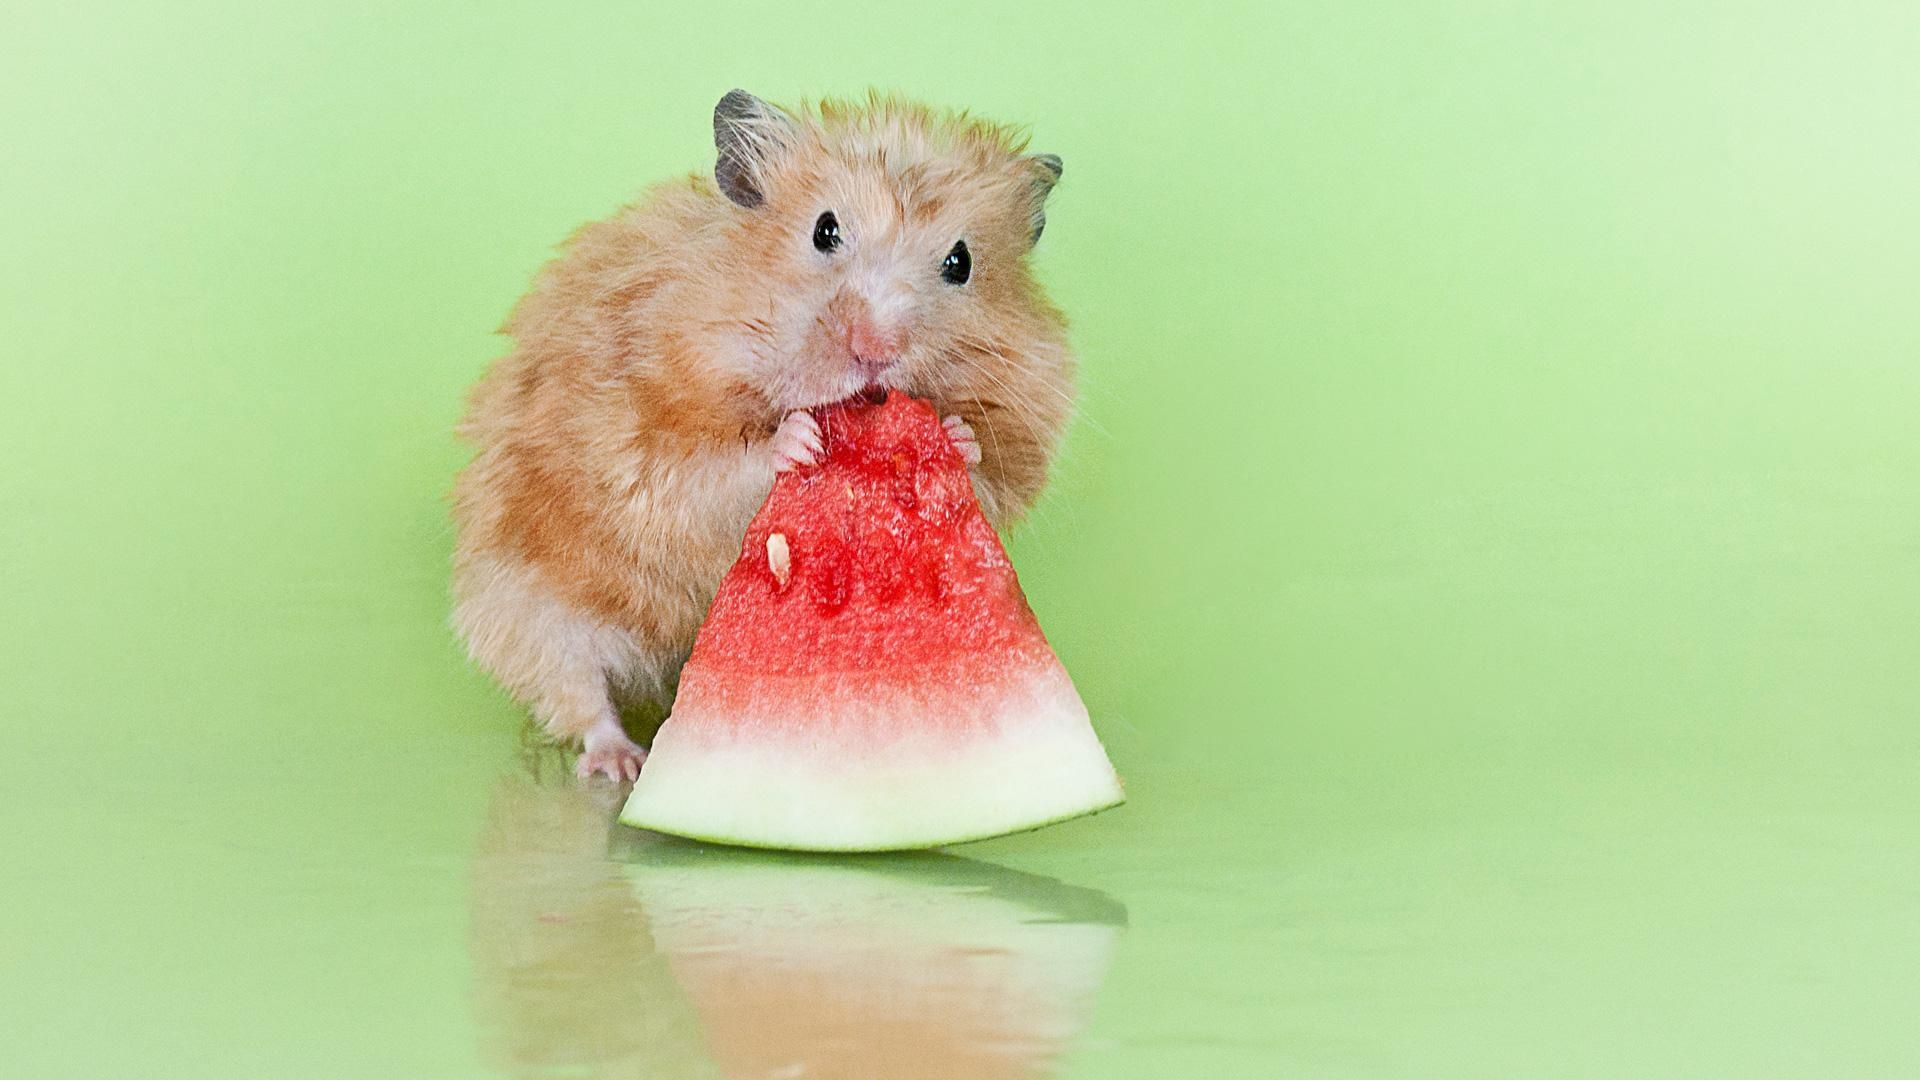 16 Pictures of Animals Eating Fruit. Animal eating, Cute